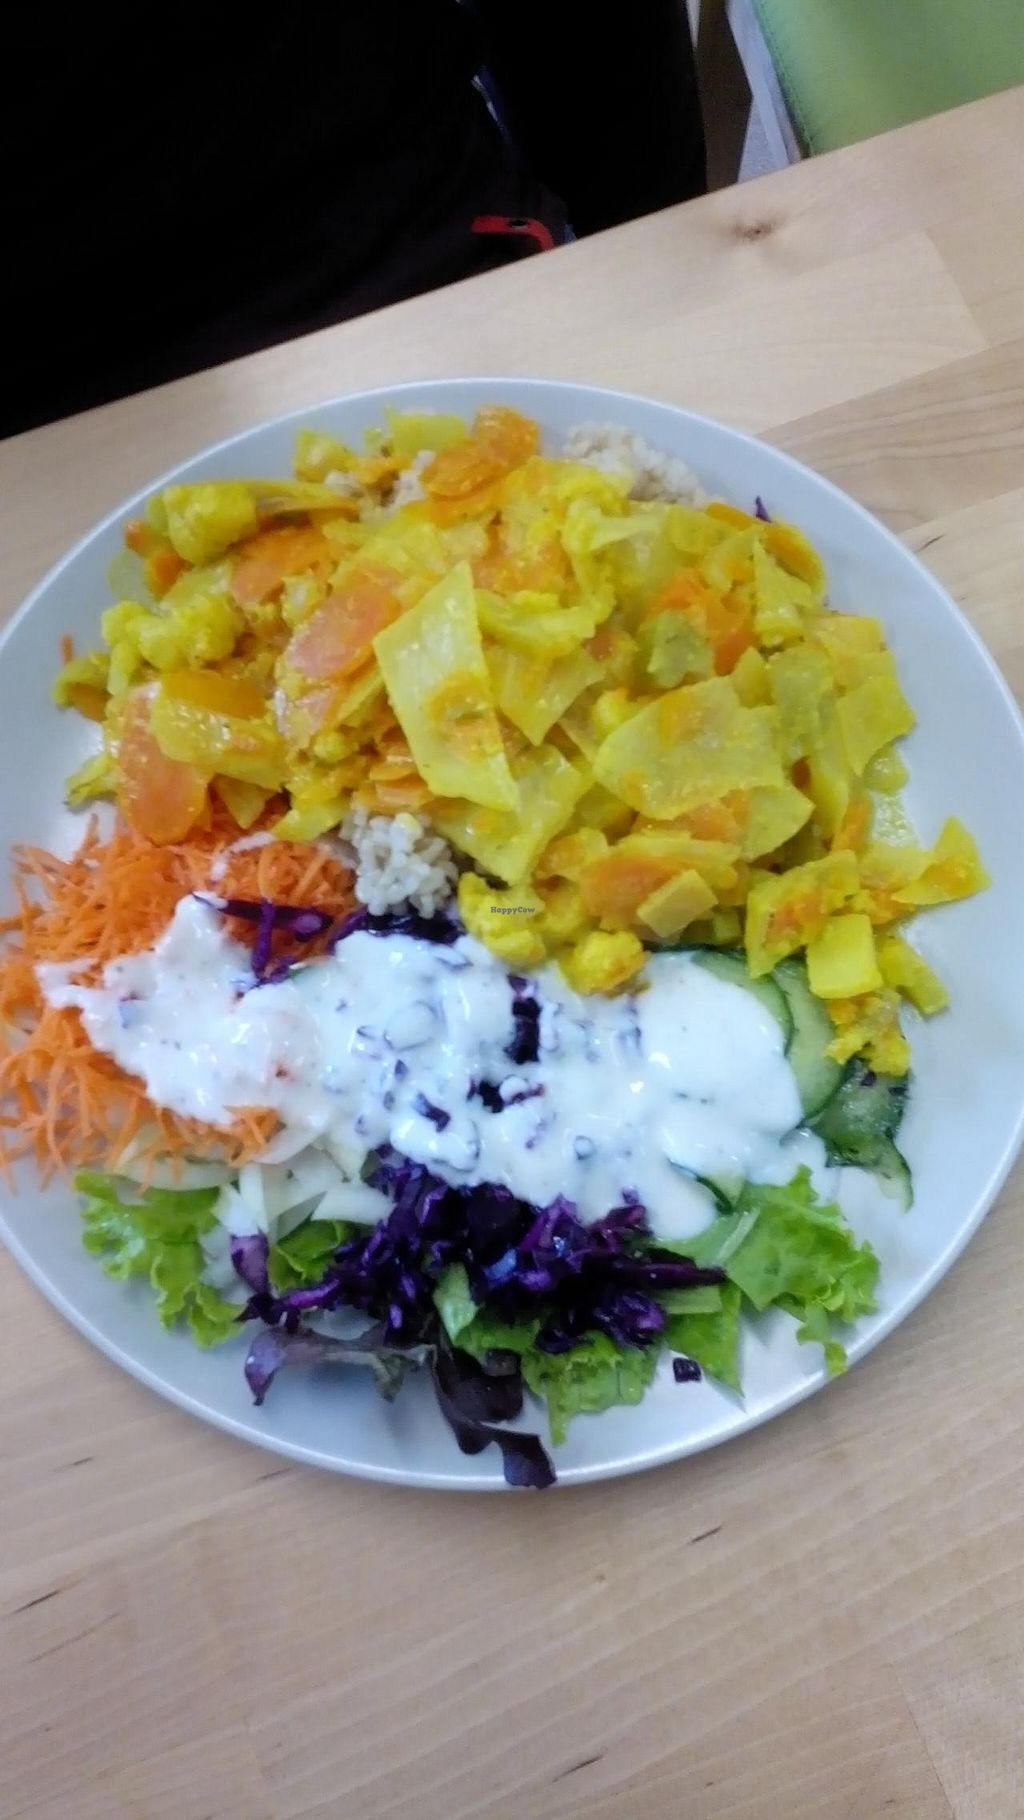 """Photo of CLOSED: Immergruen Bistro and Cafe  by <a href=""""/members/profile/Yilla"""">Yilla</a> <br/>Forgot the name veggies with rice ;) <br/> May 18, 2015  - <a href='/contact/abuse/image/38251/102644'>Report</a>"""